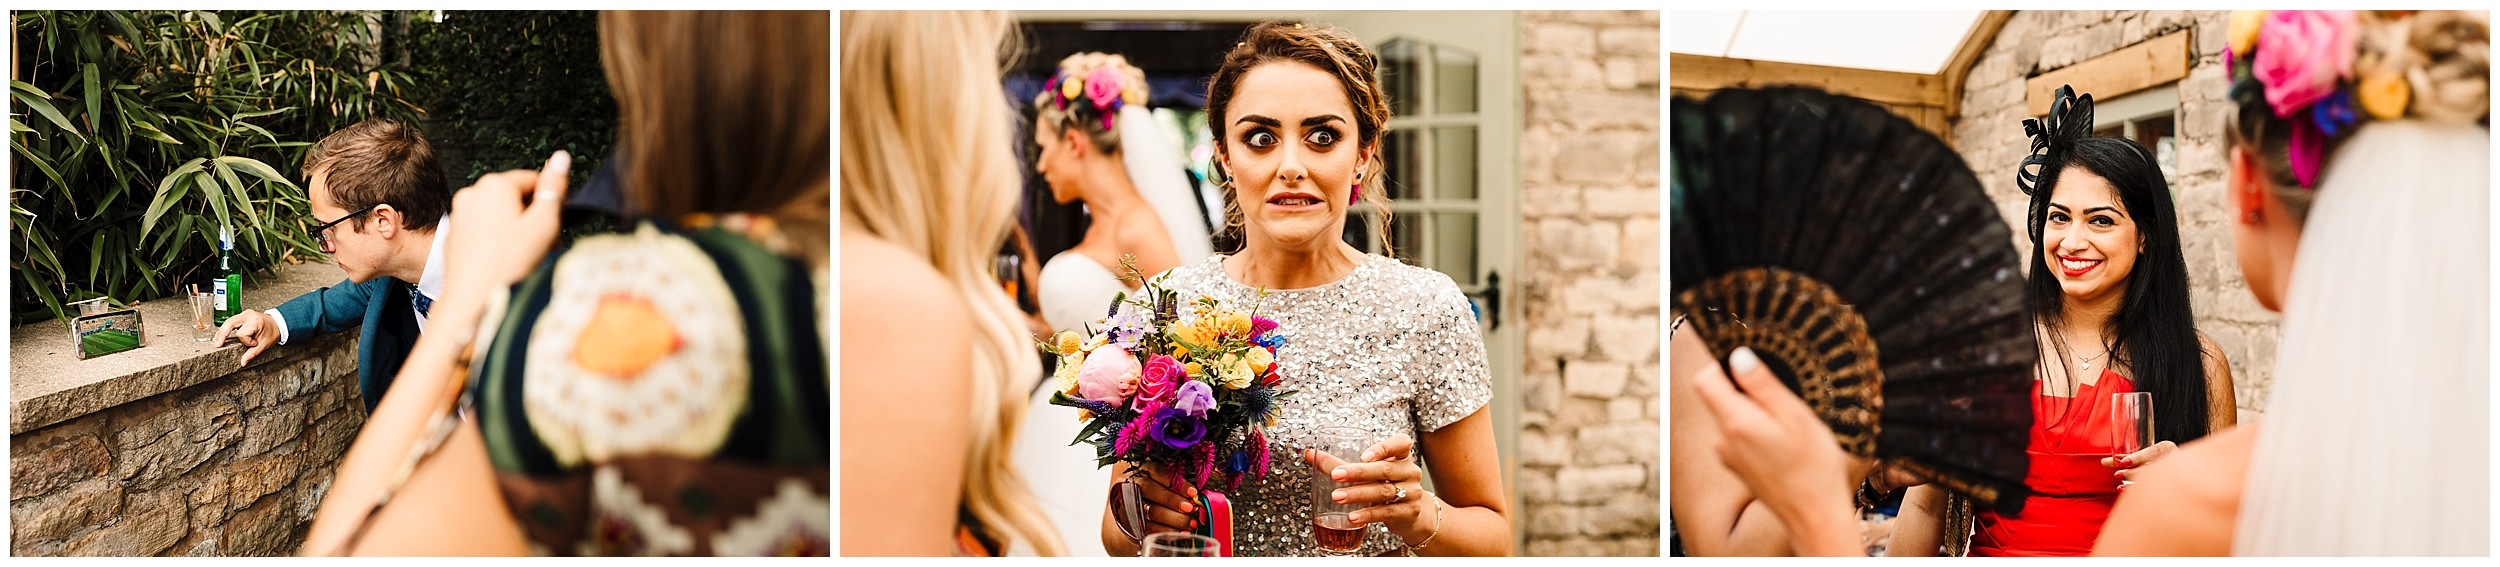 guests at a farm wedding in yorkshire